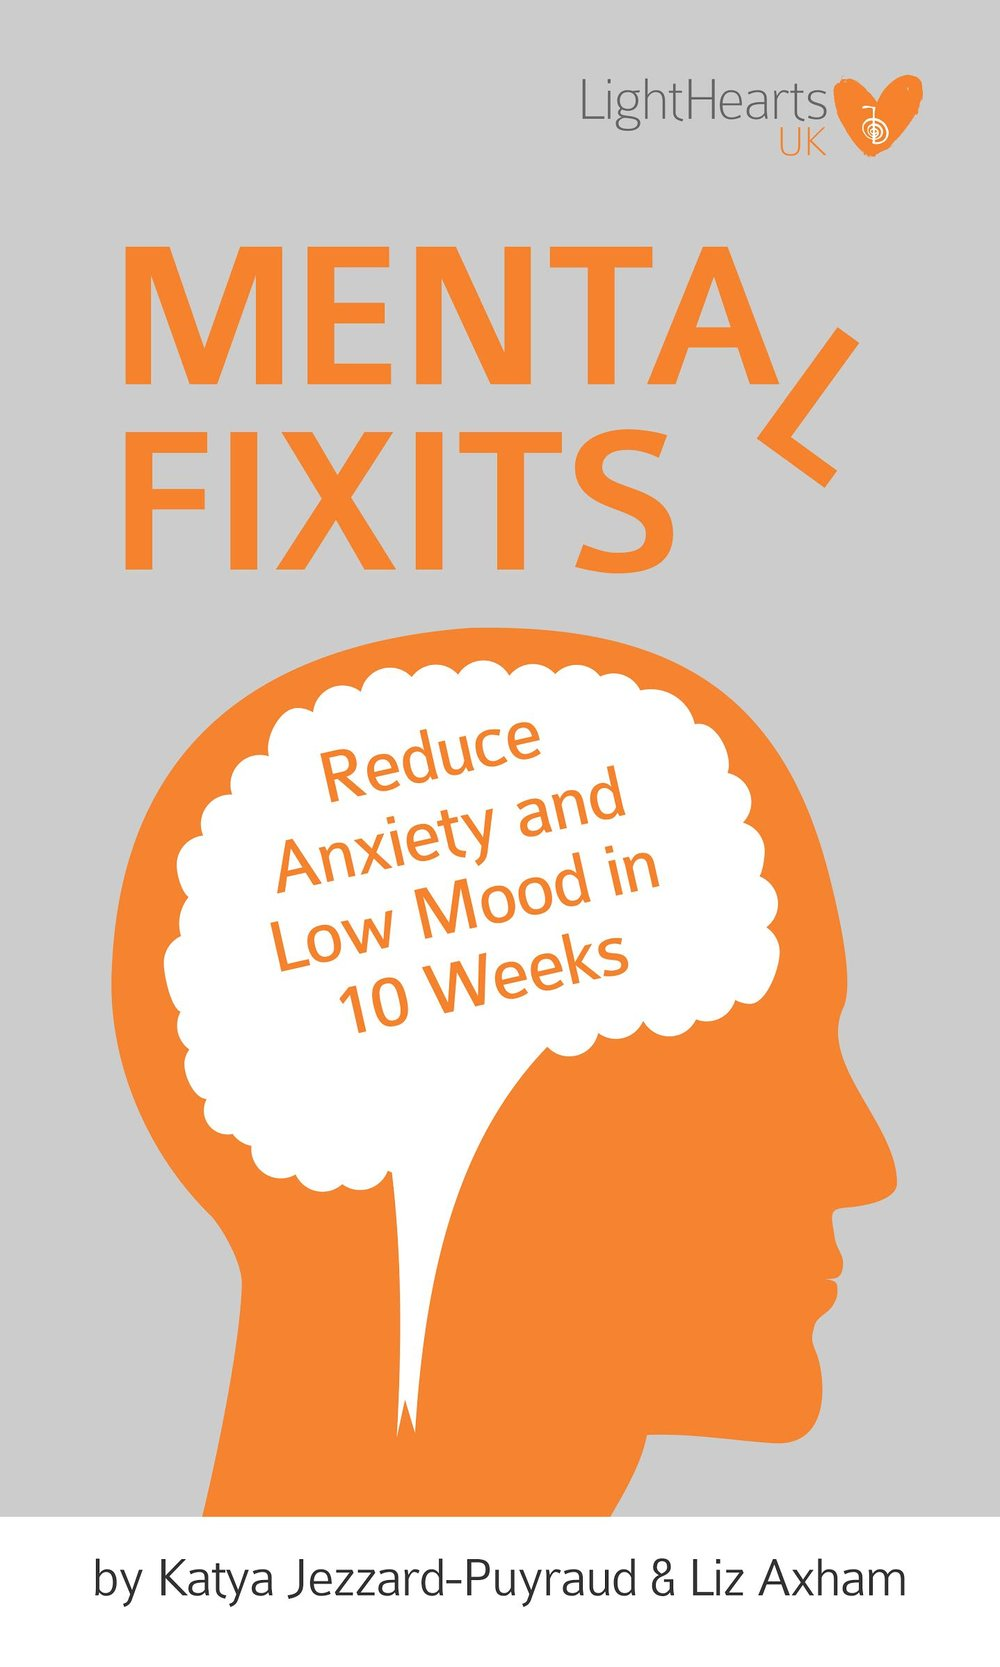 - GET THE FREE MENTAL FIXITS KINDLE EBOOK...Download the whole LightHearts UK mental health course for free with Kindle Unlimited. Includes personal stories from the LightHearts founders on how to deal with low self-esteem, eating disorders, depression, anxious thoughts and panic attacks.So click HERE to go to Amazon and find out how you can download your copy now.